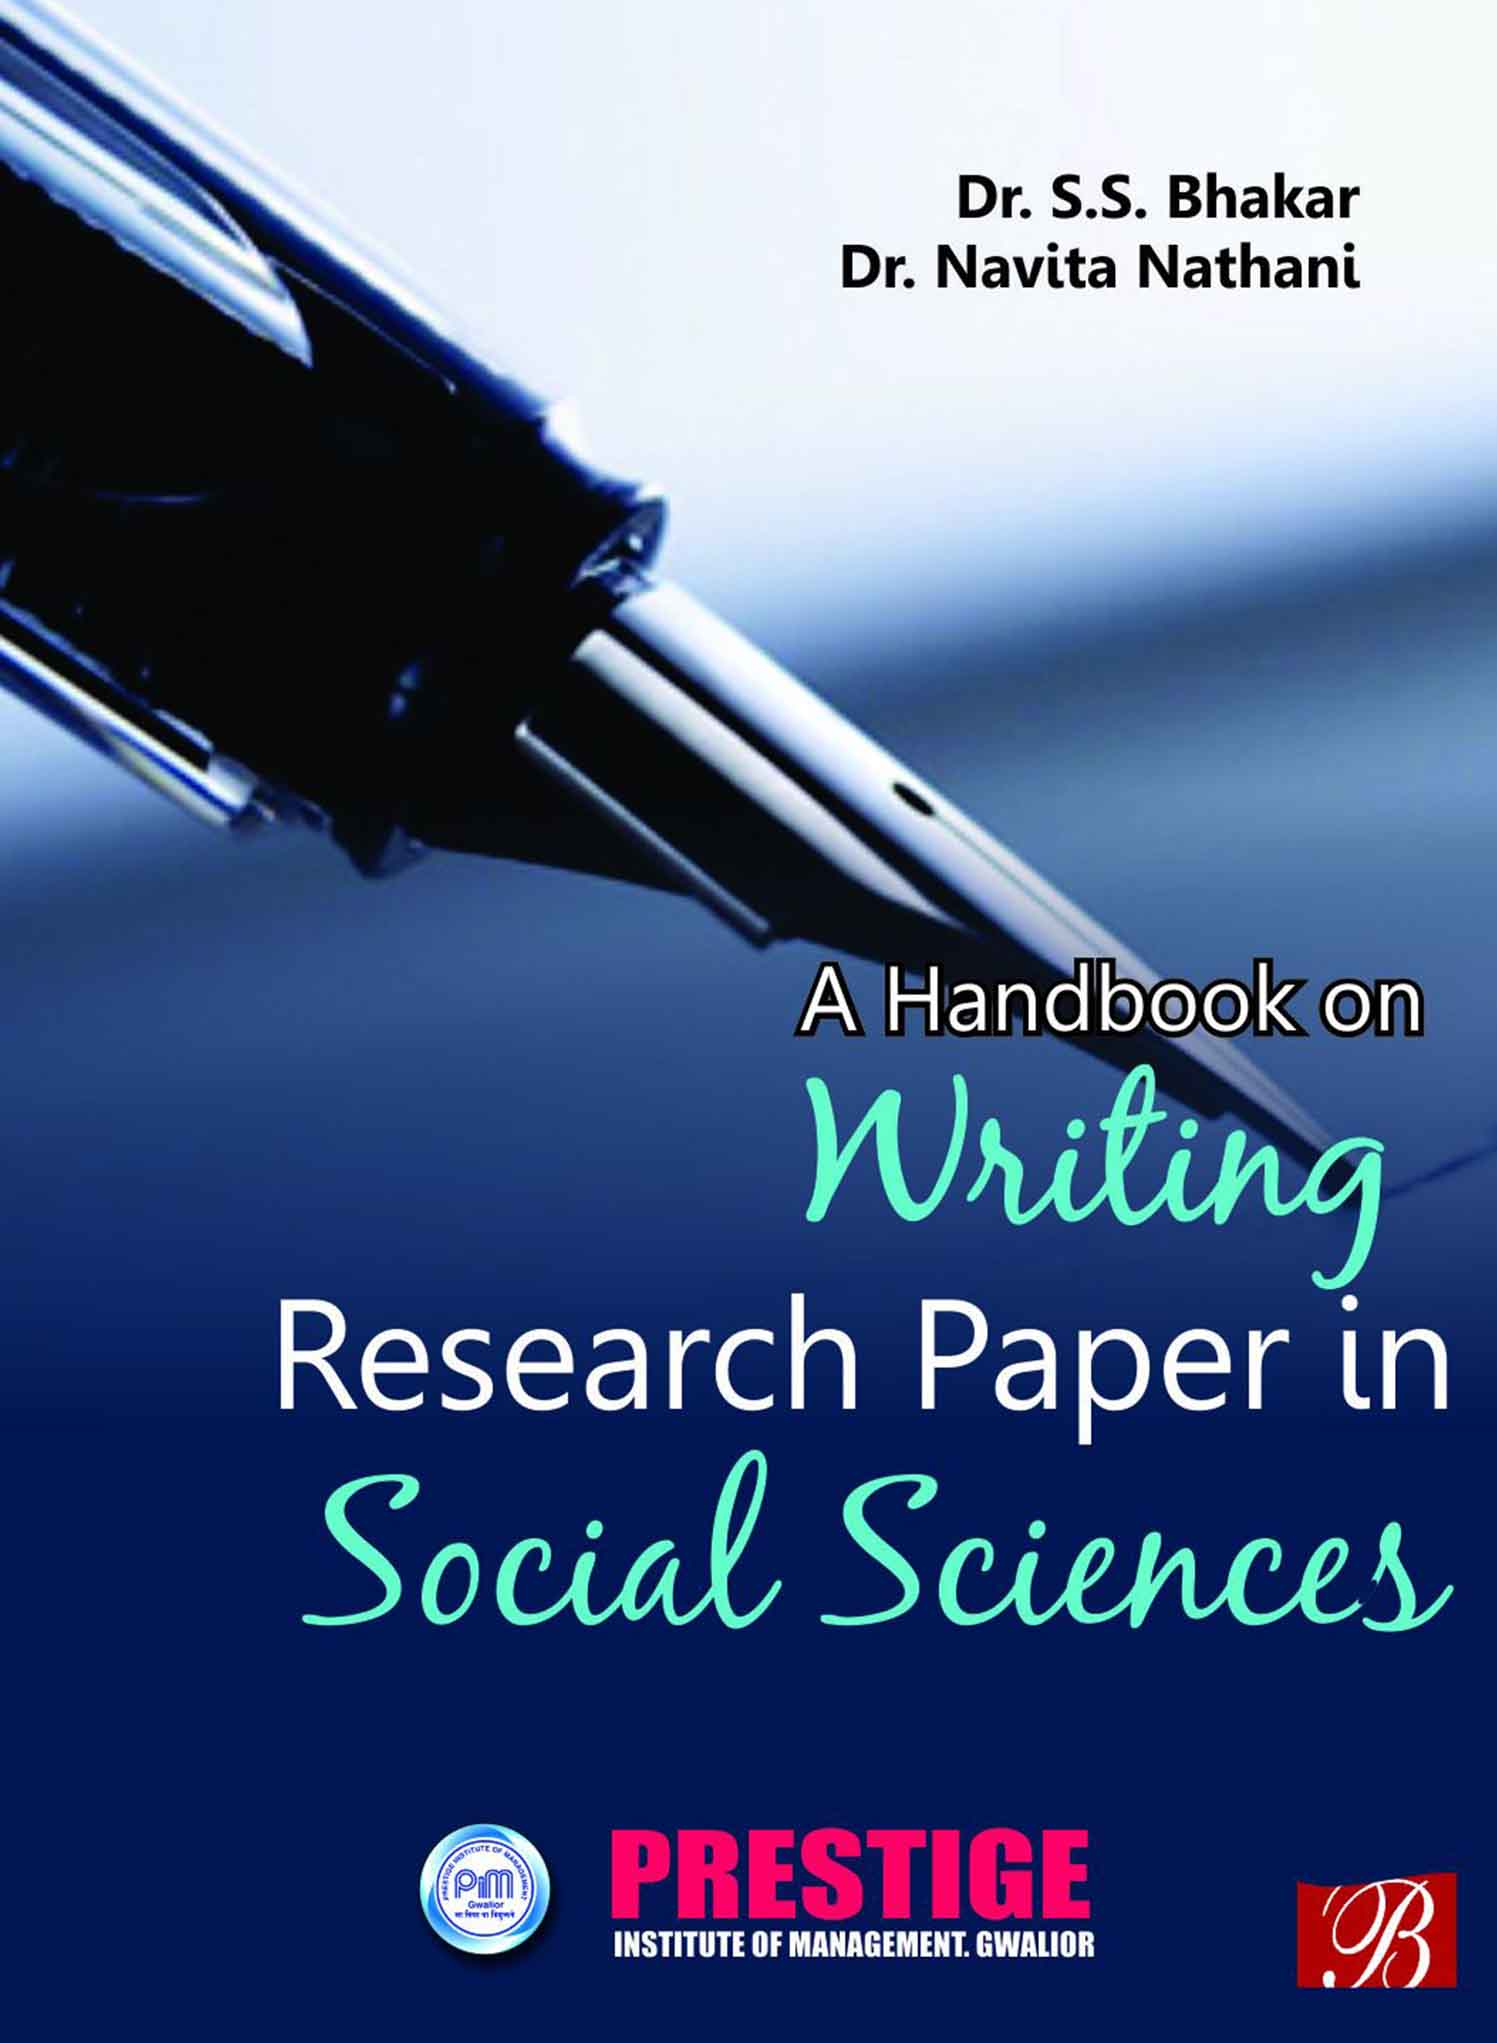 001 Handbook On Writing Research Paper In Social Sciences Stunning A Full